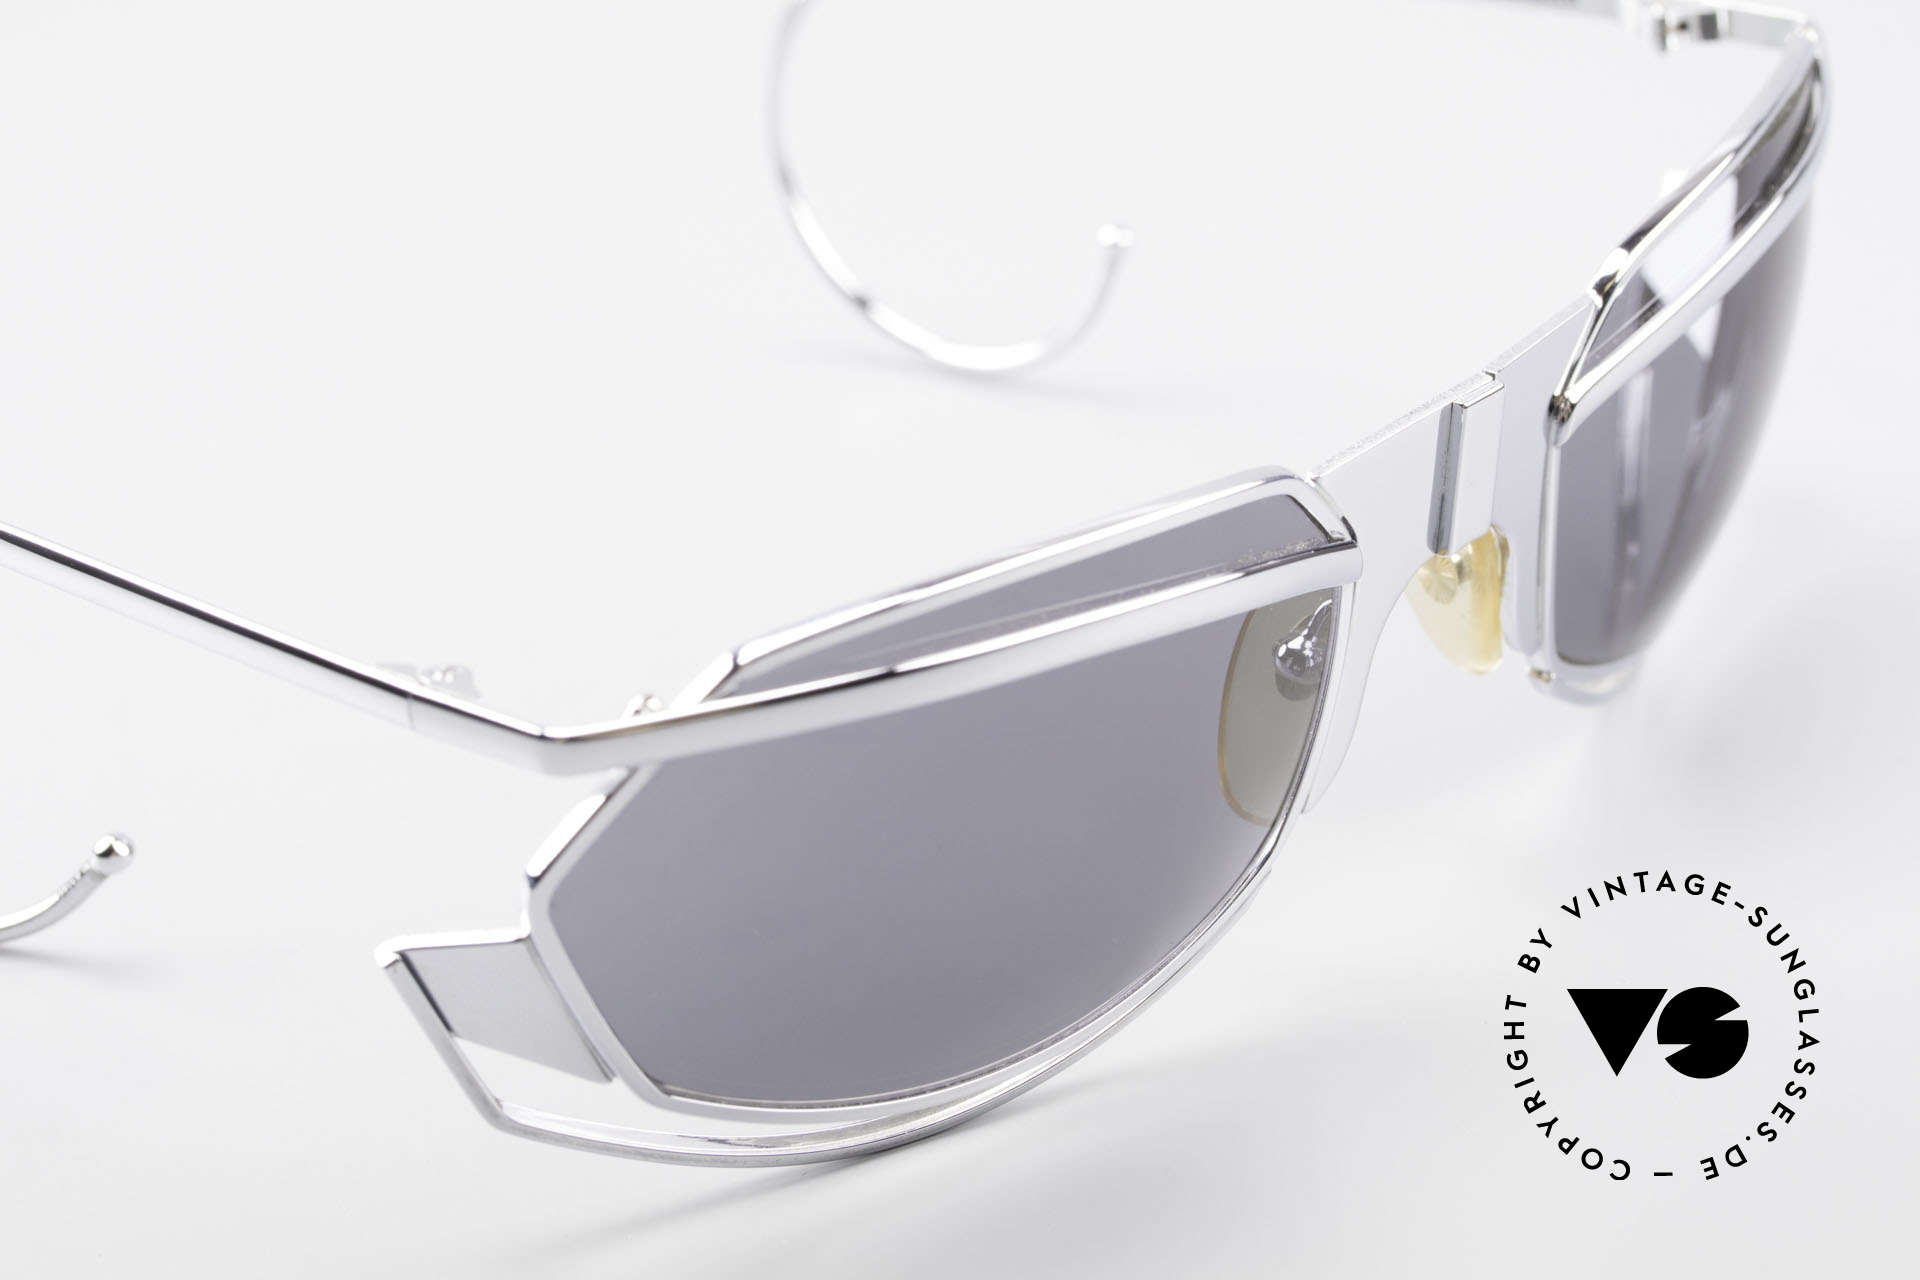 IDC G1 Folding Large Folding Sunglasses 90's, NO RETRO specs / shades; an app. 25 years old original, Made for Men